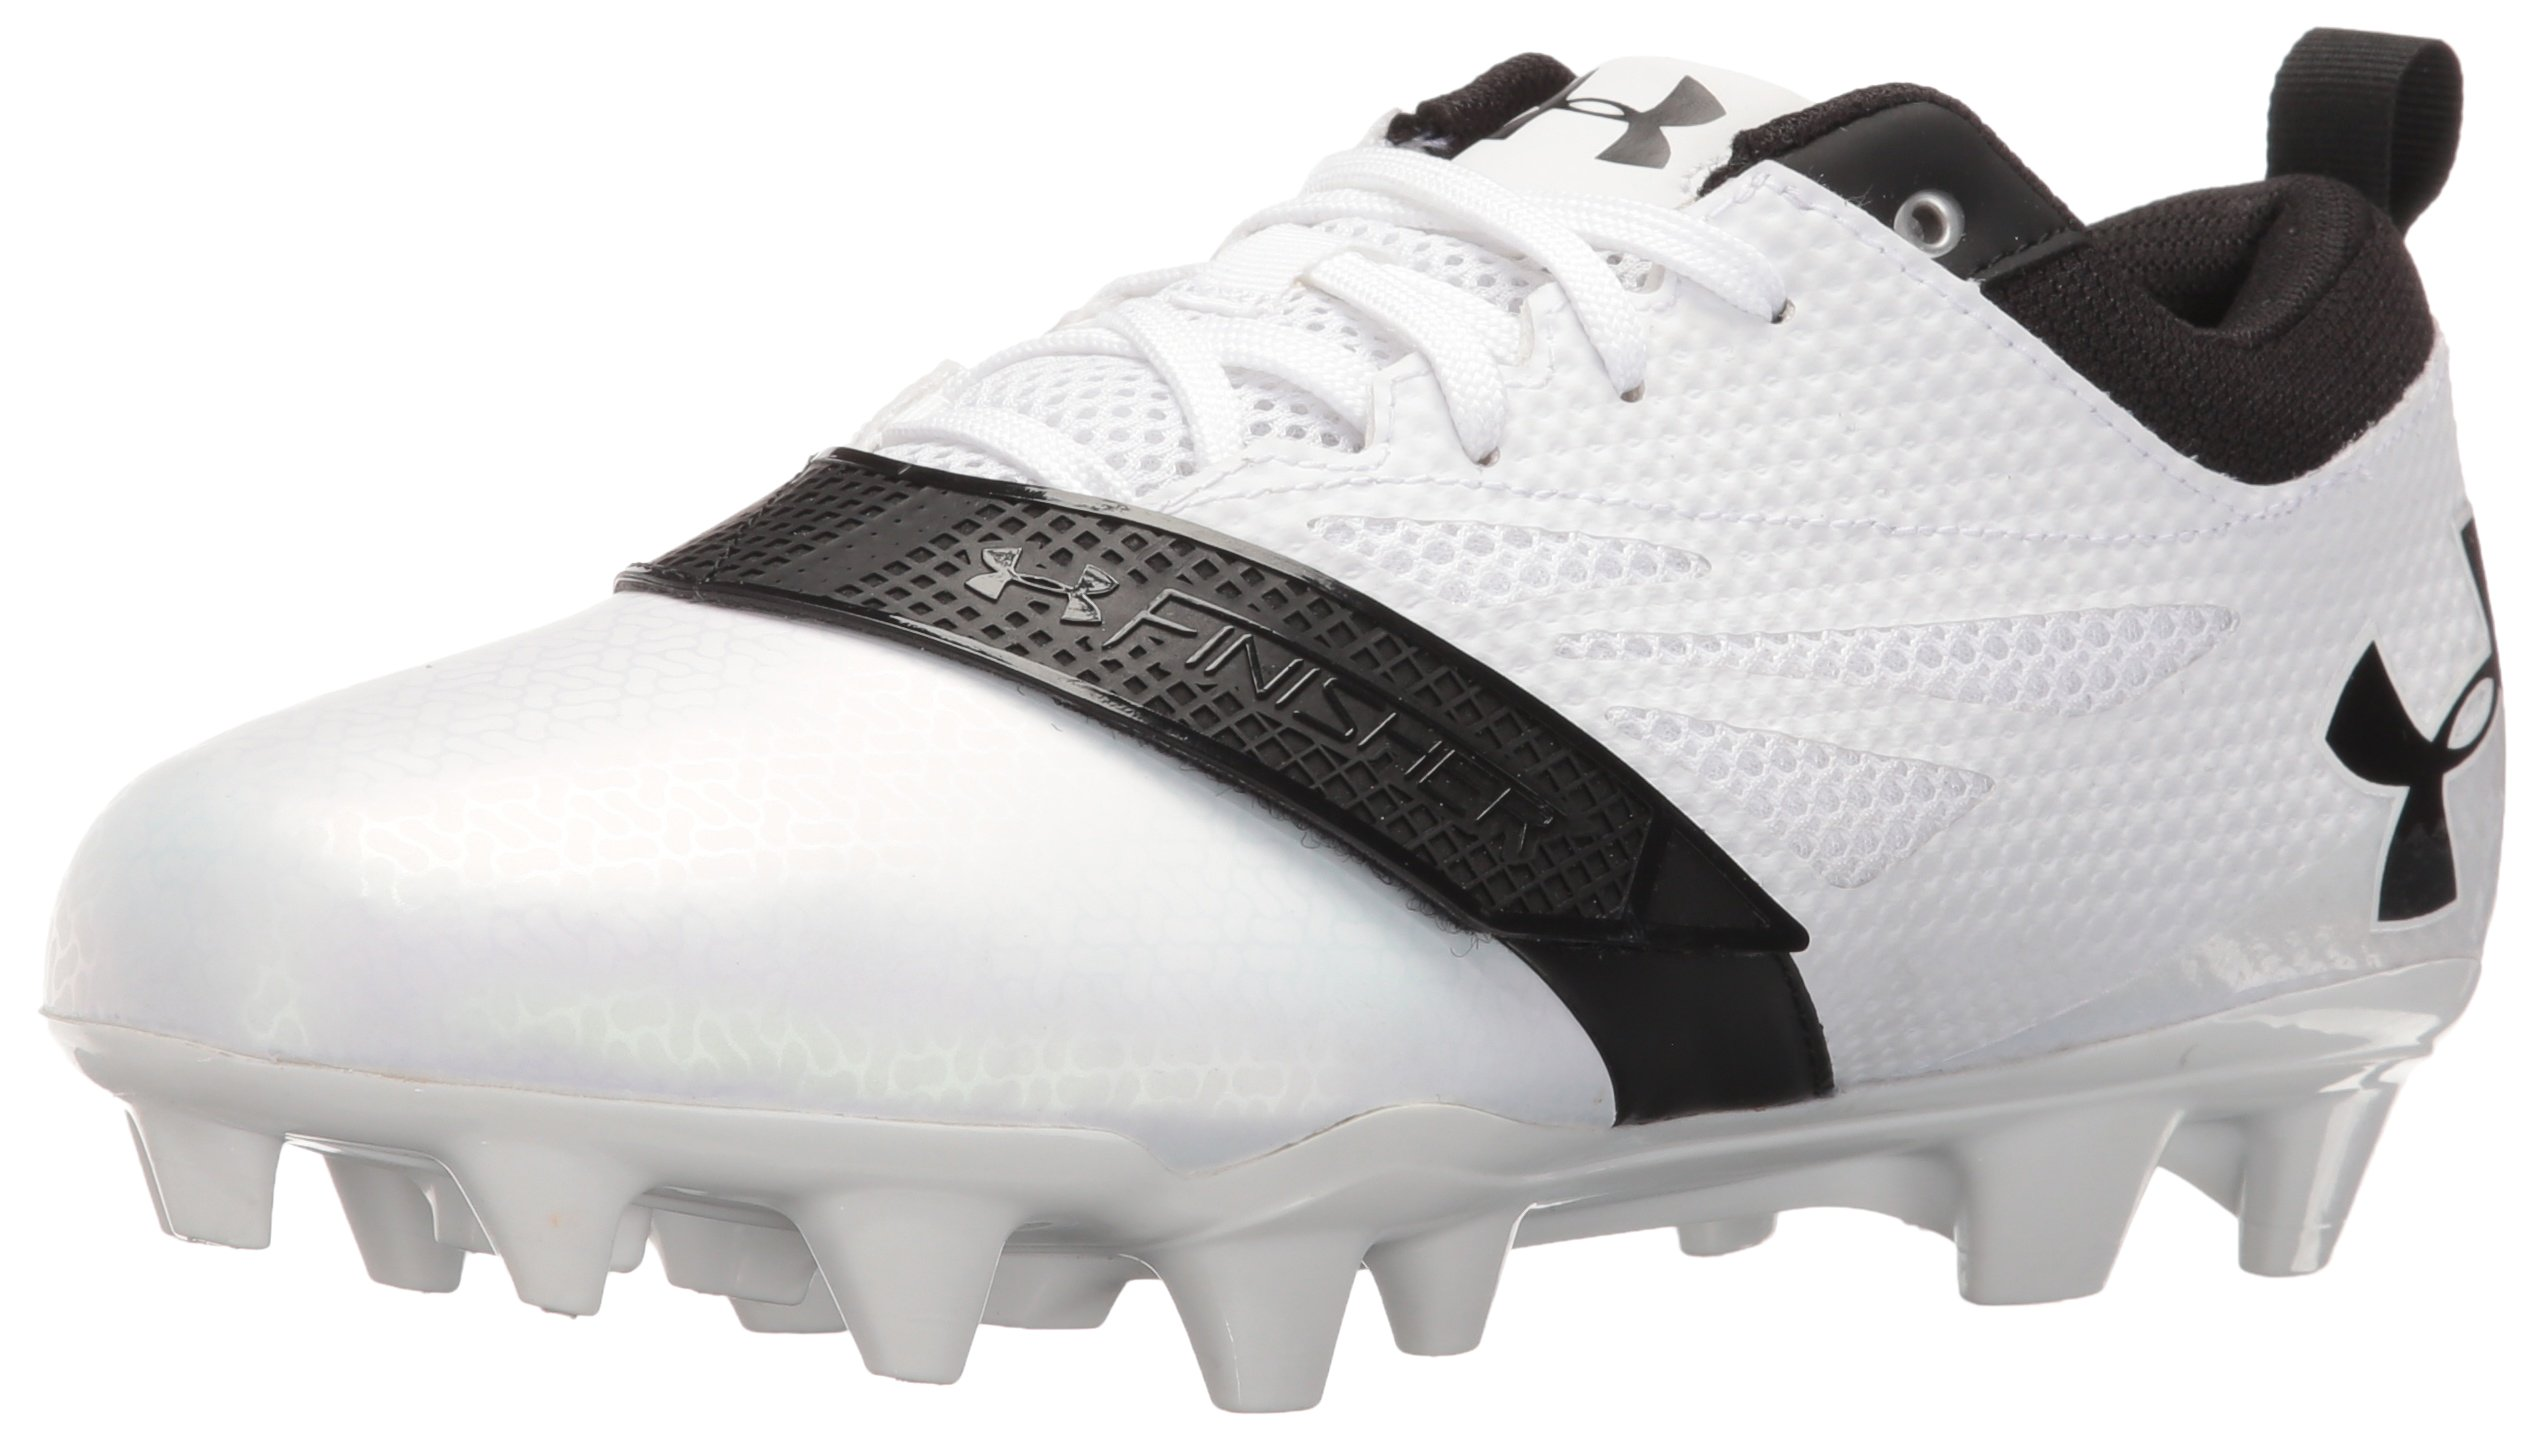 Under Armour Men's Lax Finisher MC Lacrosse Shoe, White (101)/Black, 9.5 by Under Armour